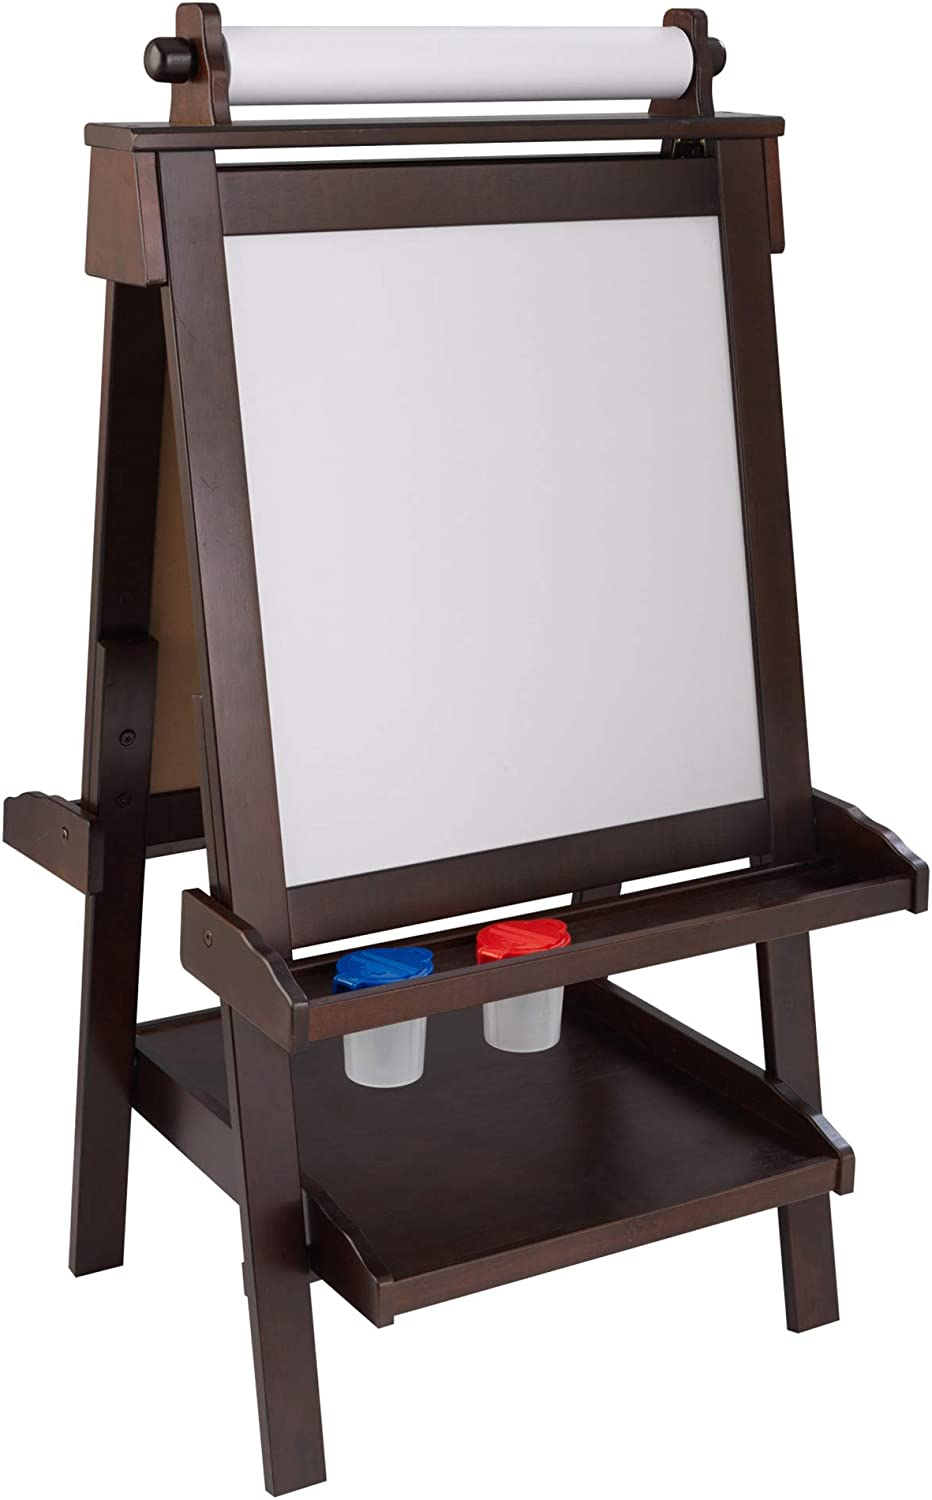 KidKraft Deluxe Portland Mall Limited price Wooden Easel with Erase Dry Surfa and Chalkboard